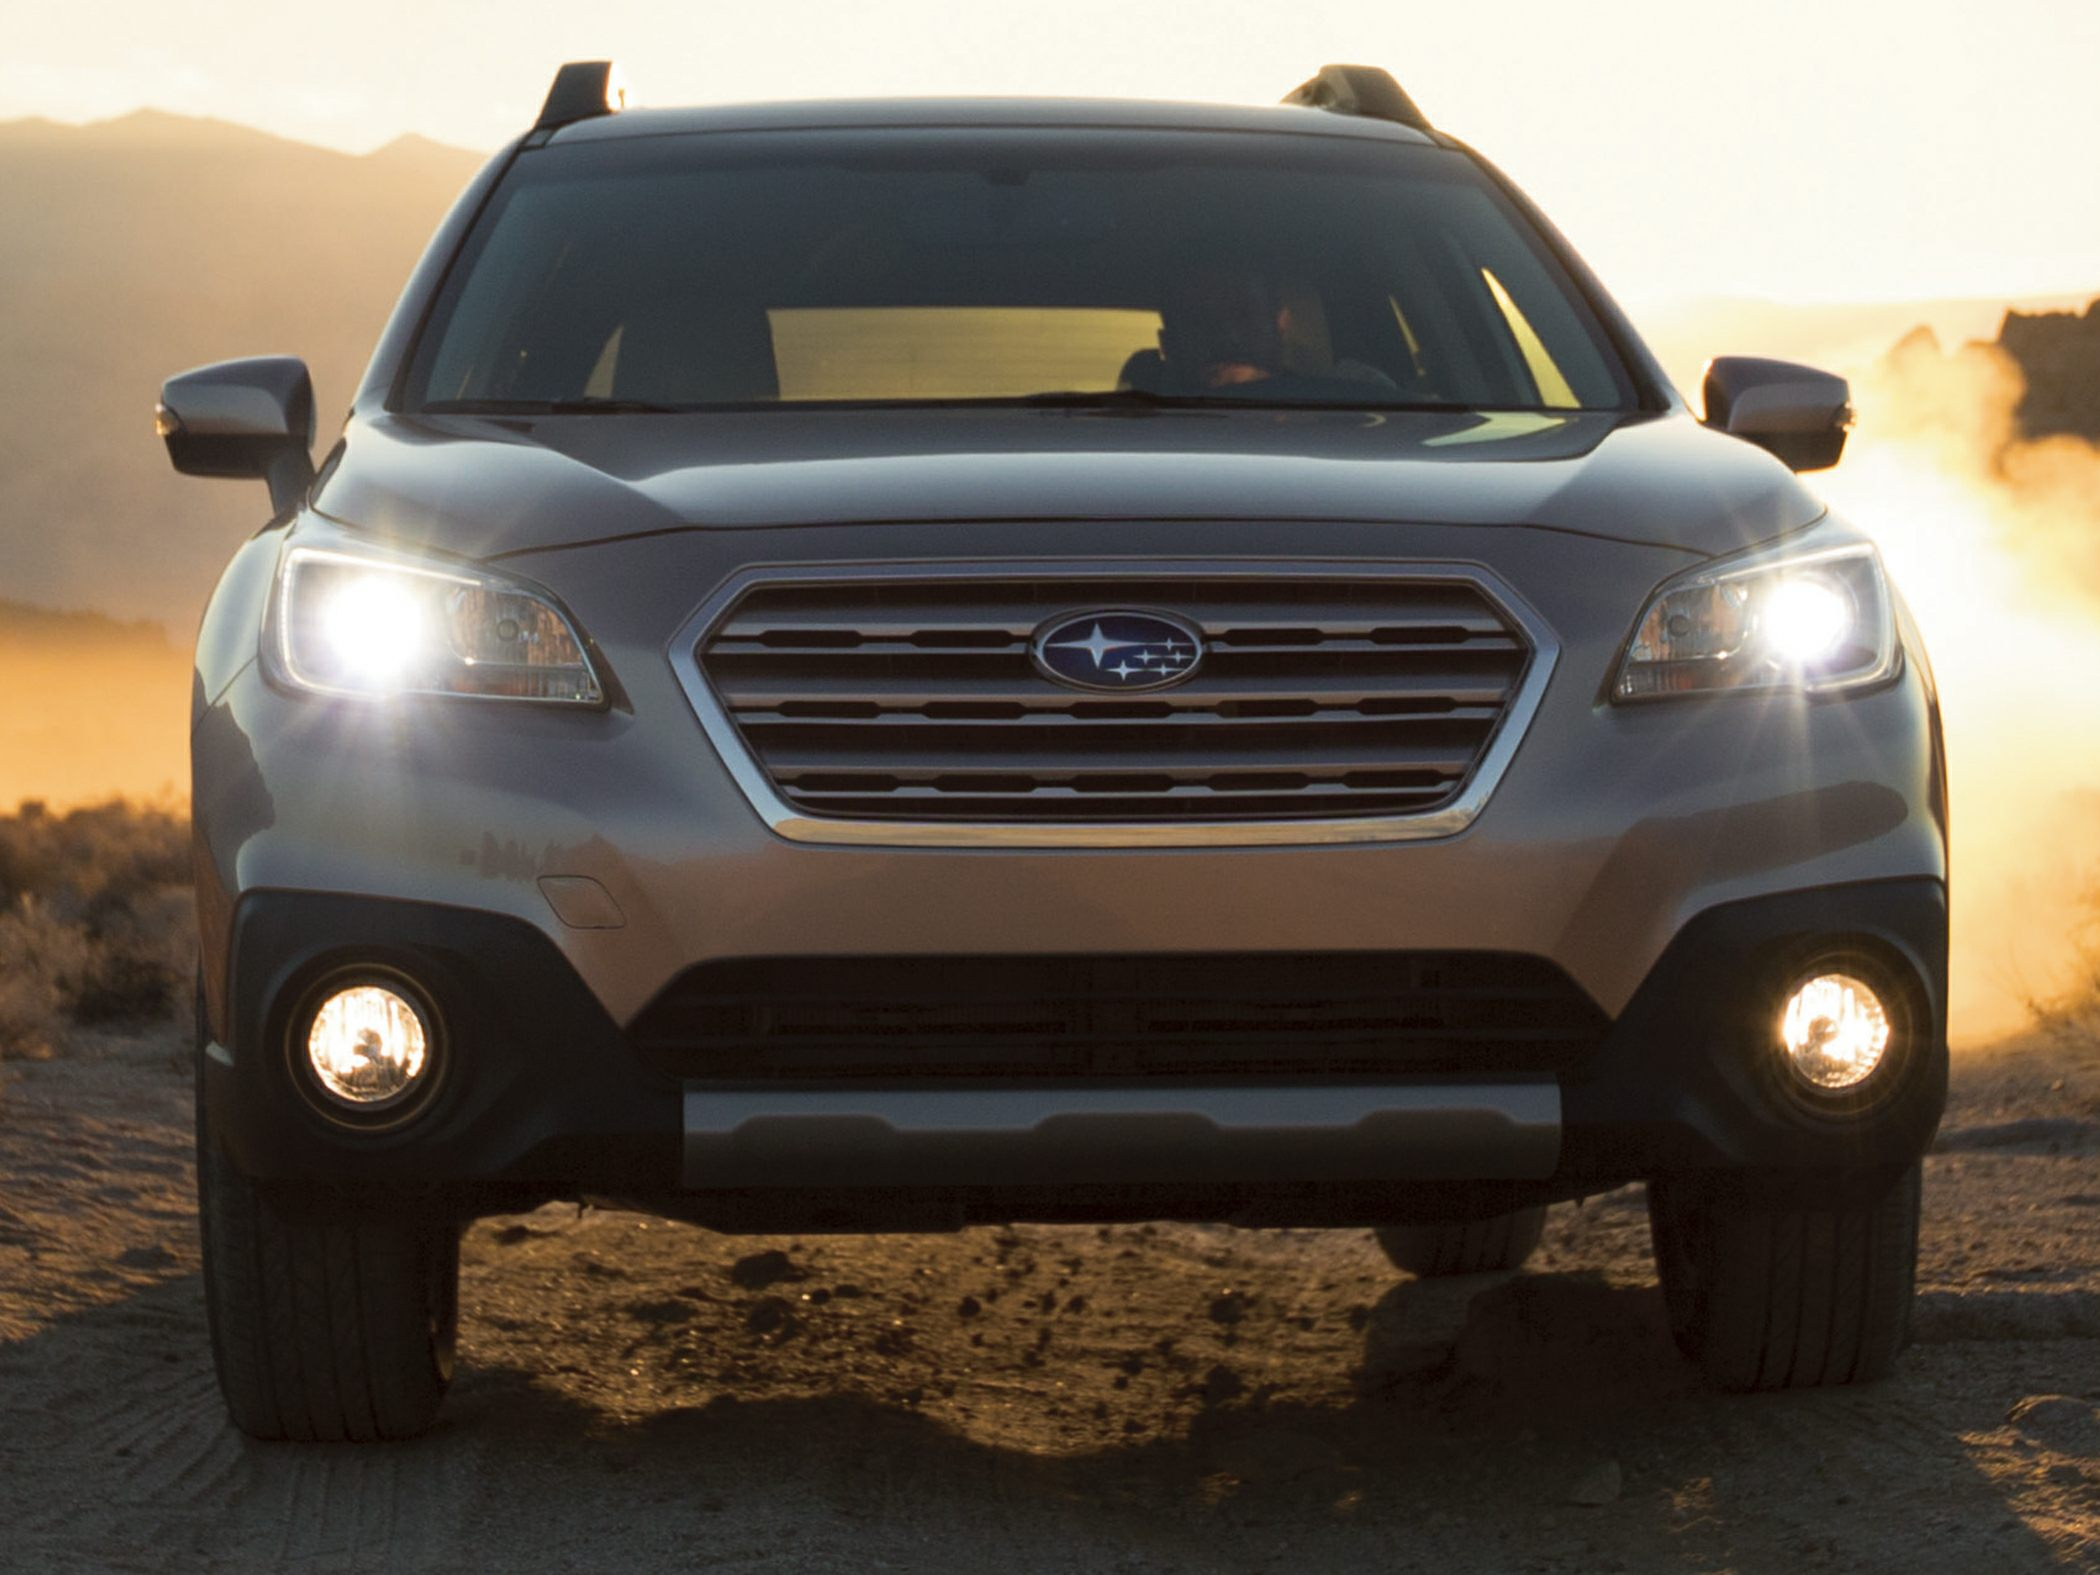 2017 subaru outback deals prices incentives leases overview whats new for 2017 vanachro Images